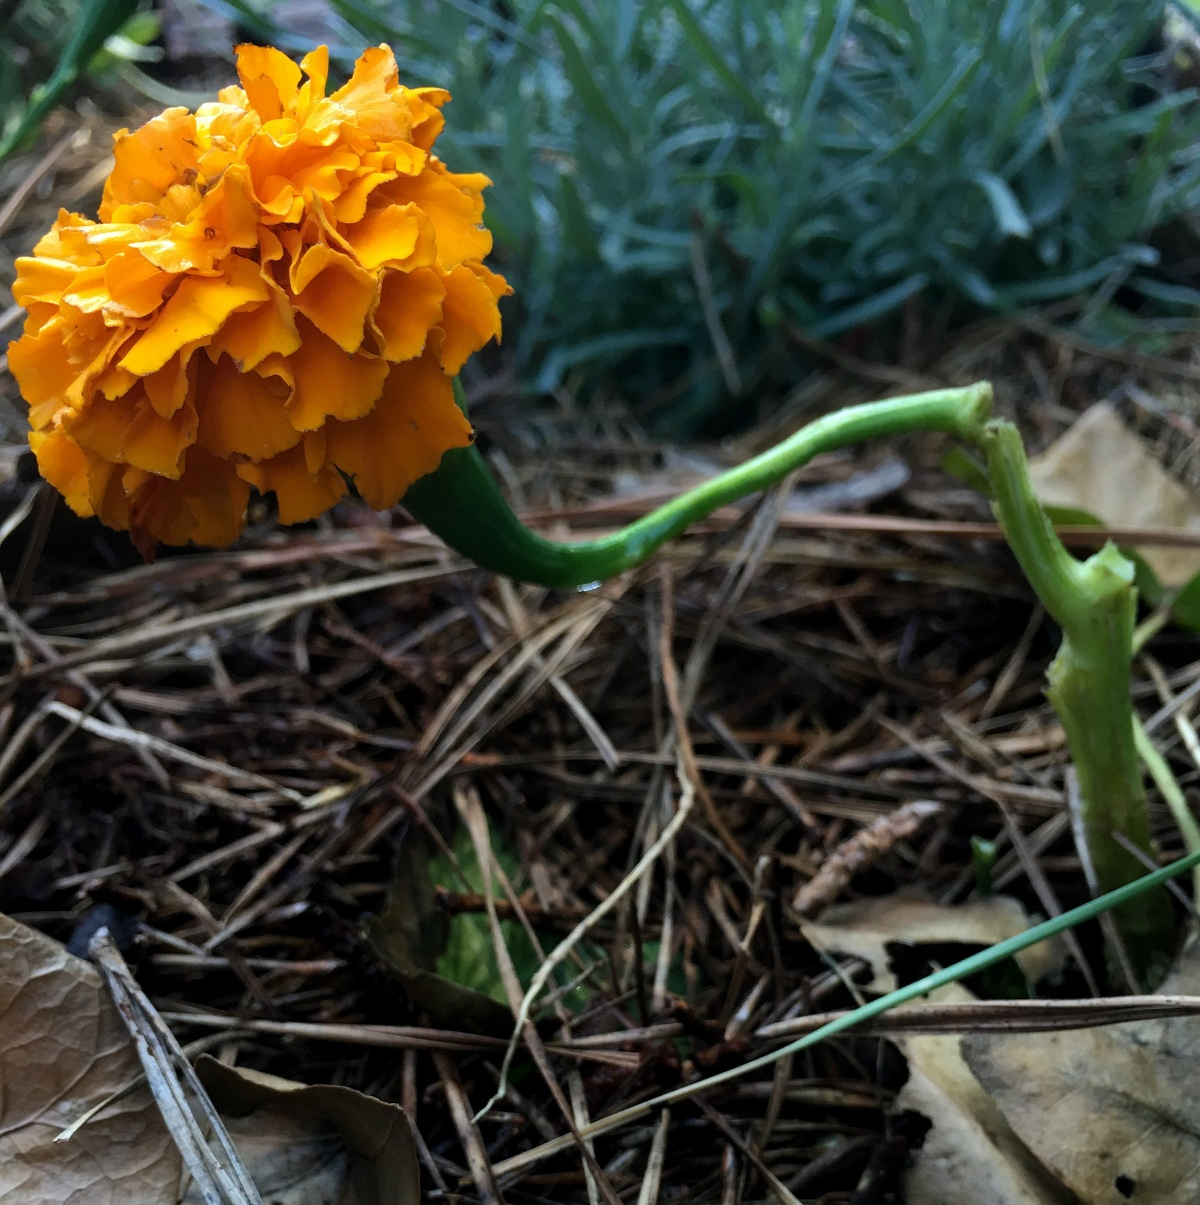 Photography ~ Marigolds that won't repel mosquitos, through the lens of an iPhone, 06/18